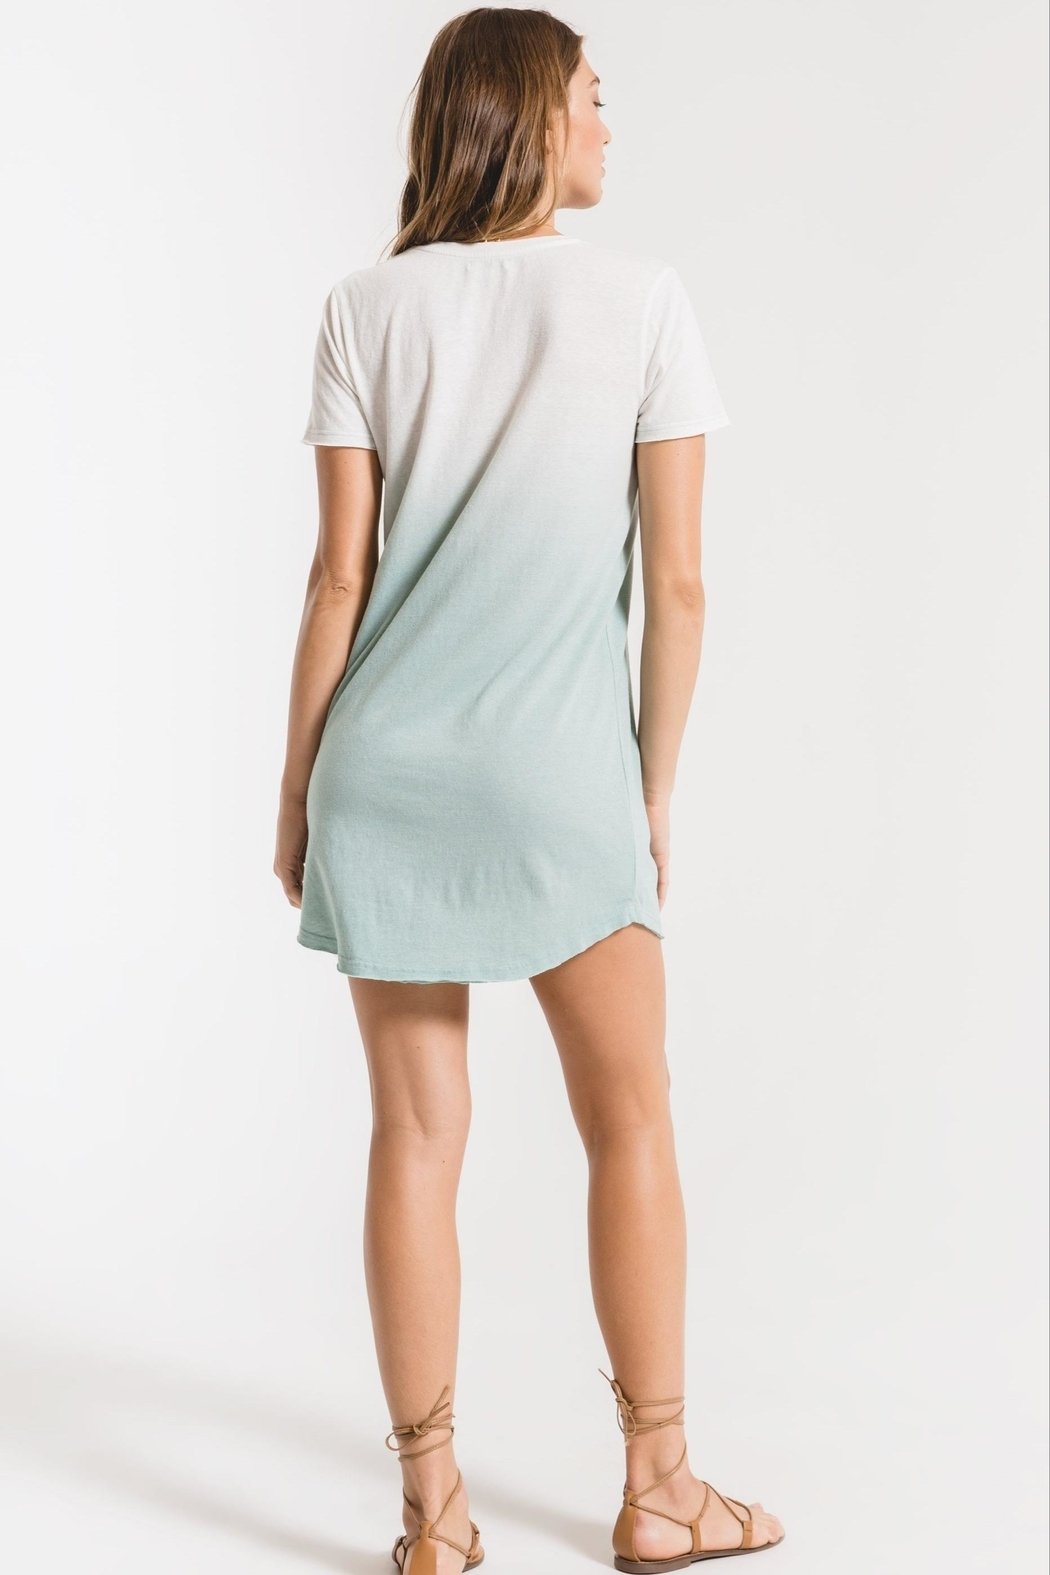 z supply Ombre Dip-Dye Dress - Side Cropped Image